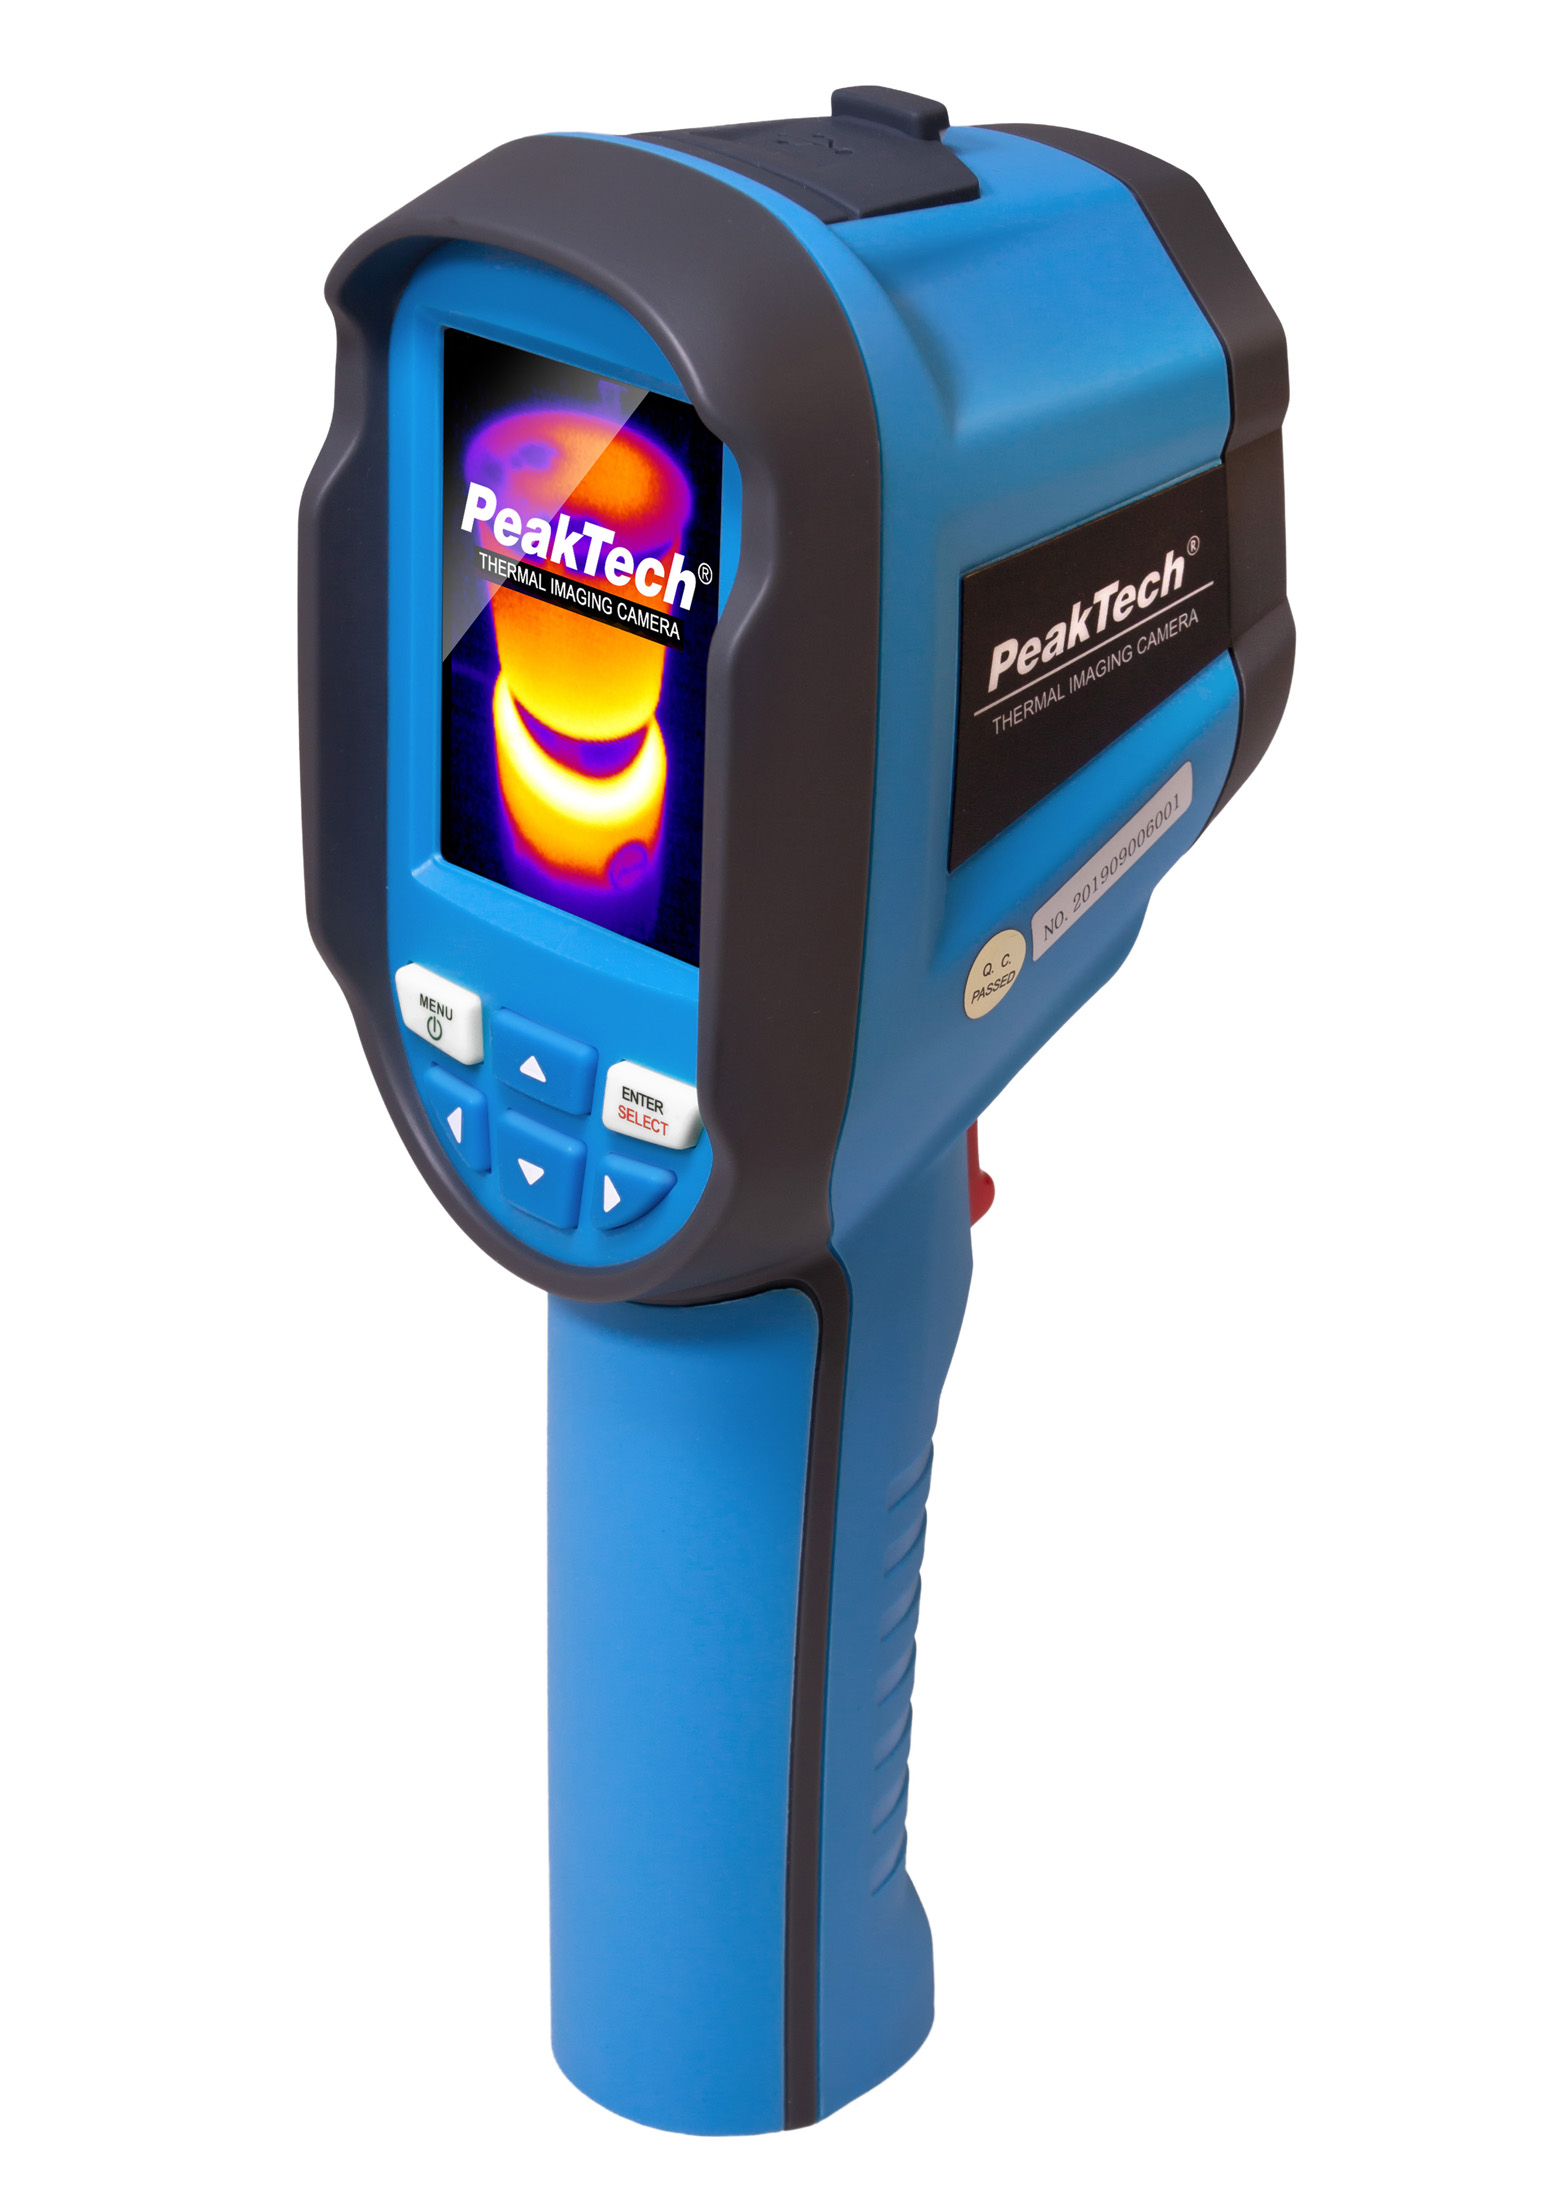 «PeakTech® P 5610 A» Thermal Imaging Camera with photo recording, USB